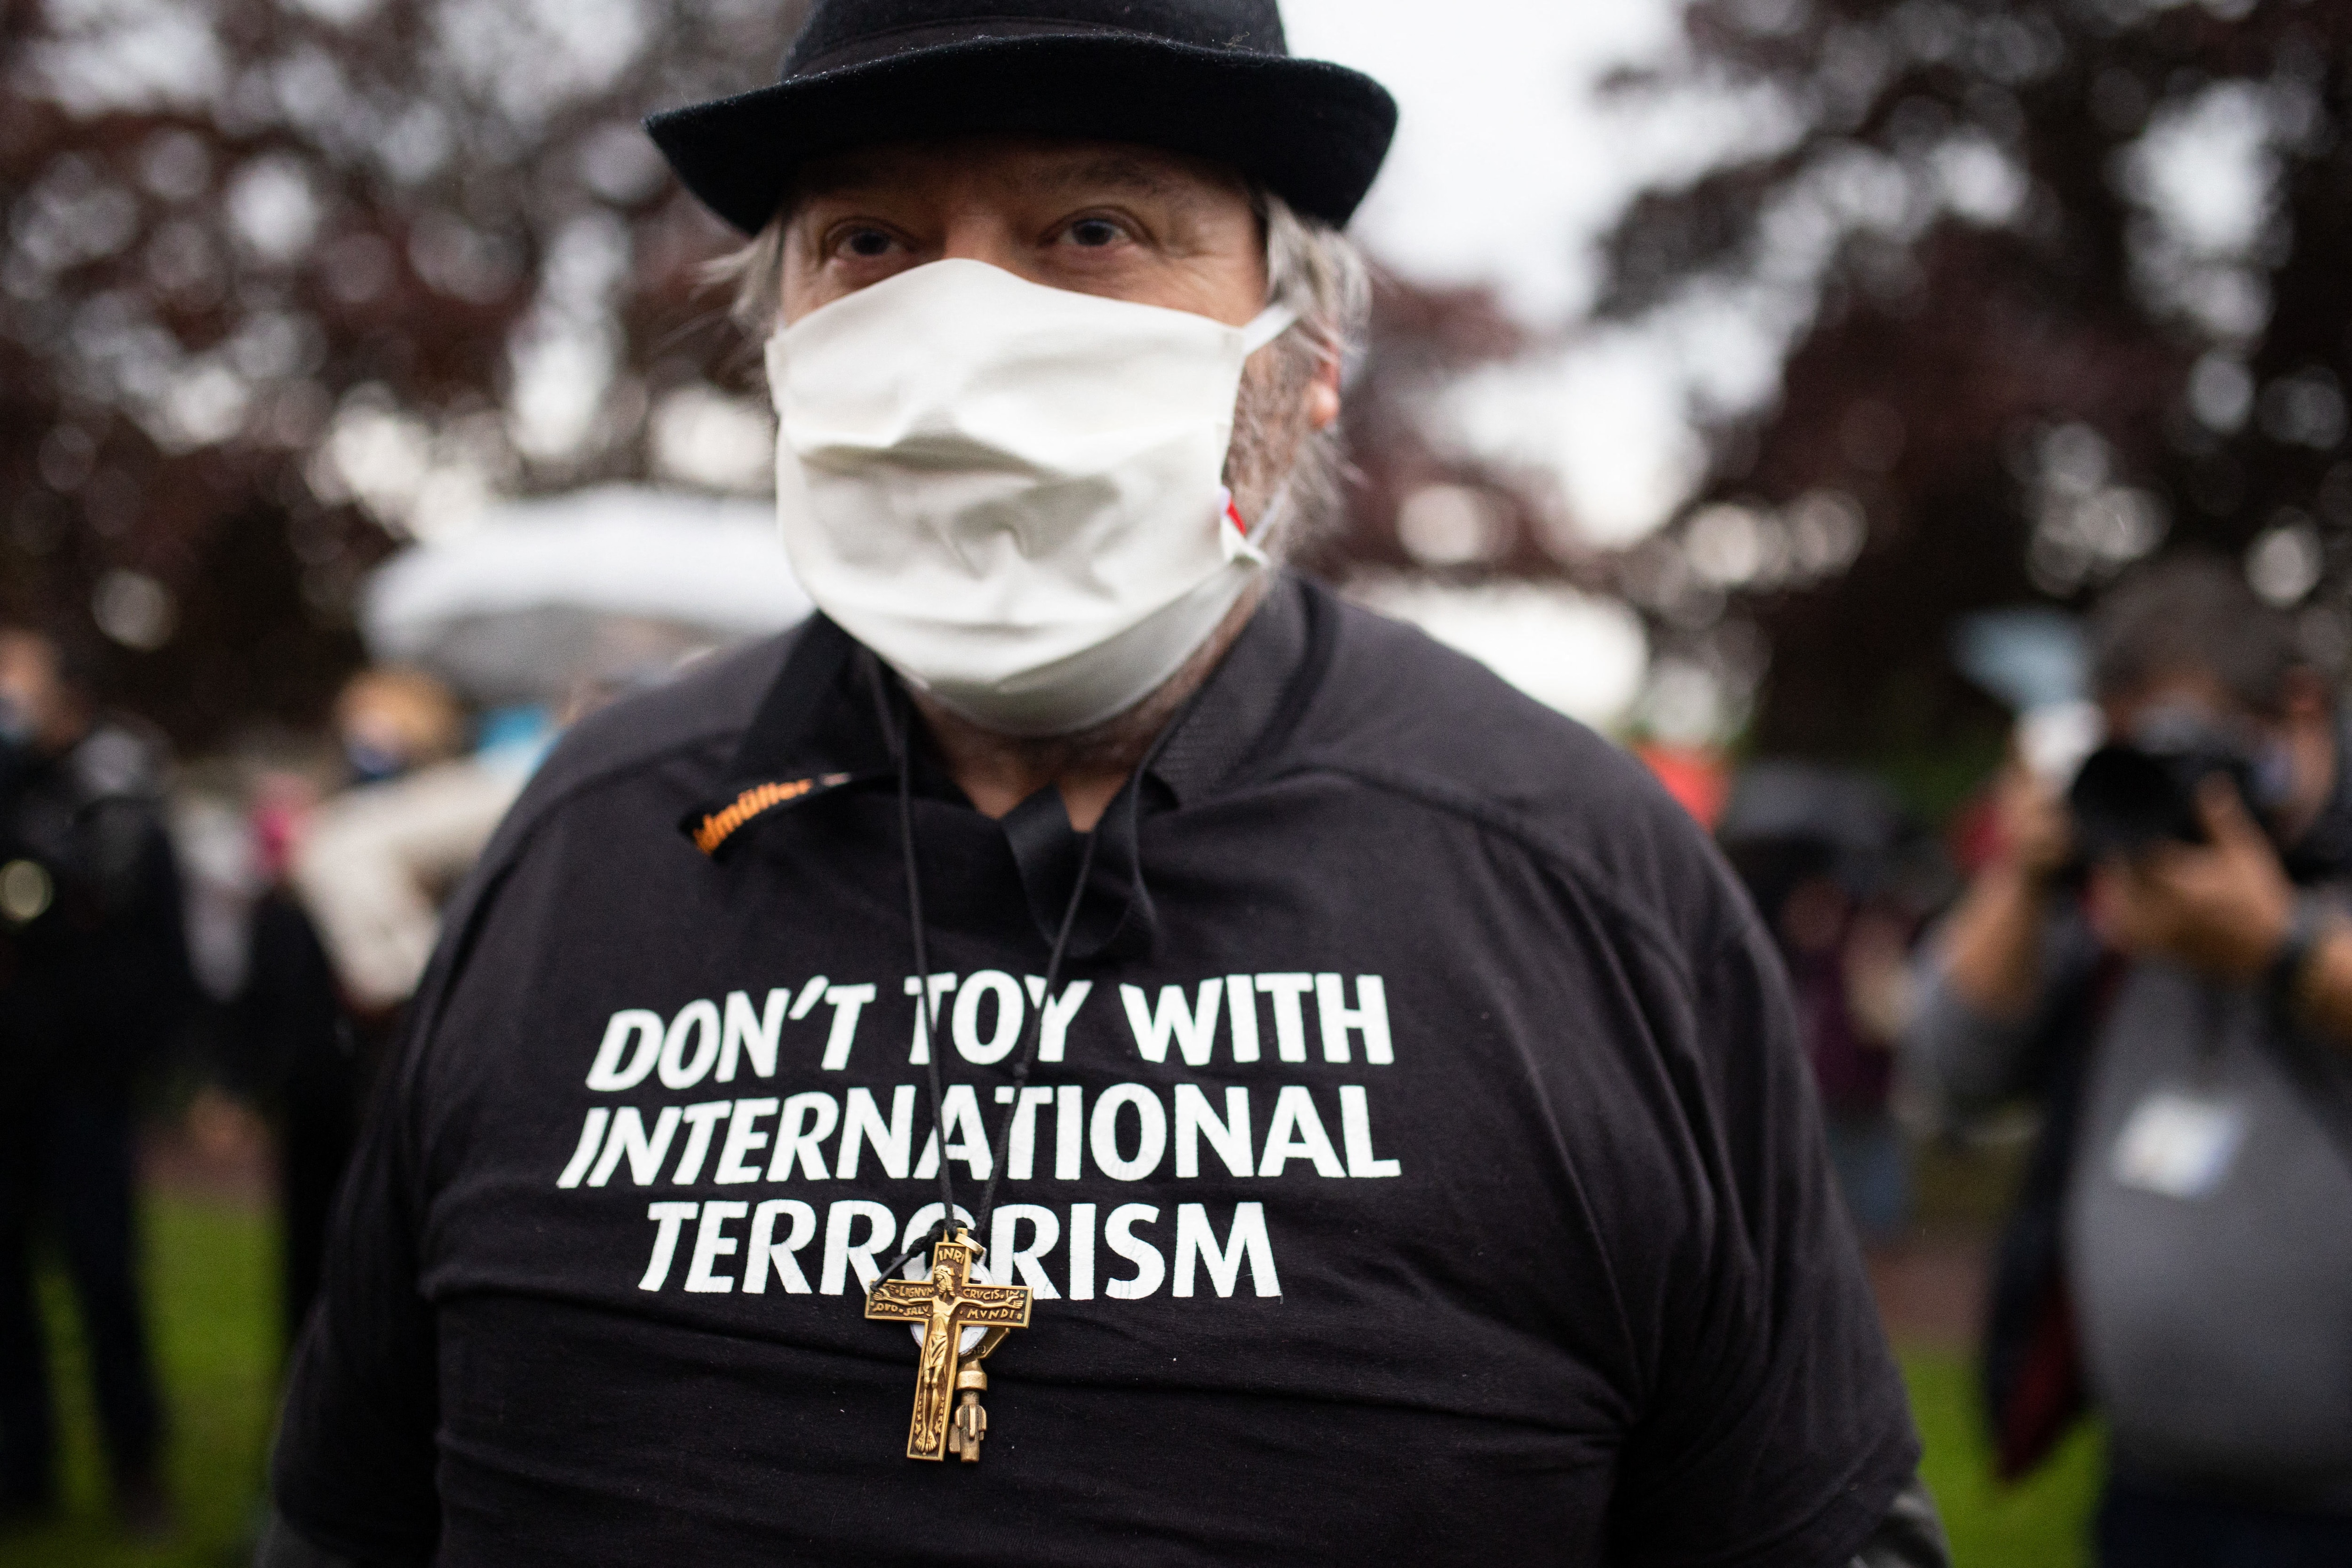 People wearing a shirt Don't toy with international terrorism gather at the middle school in Conflans-Sainte-Honorine, northwest of Paris, on 20 October, 2020.